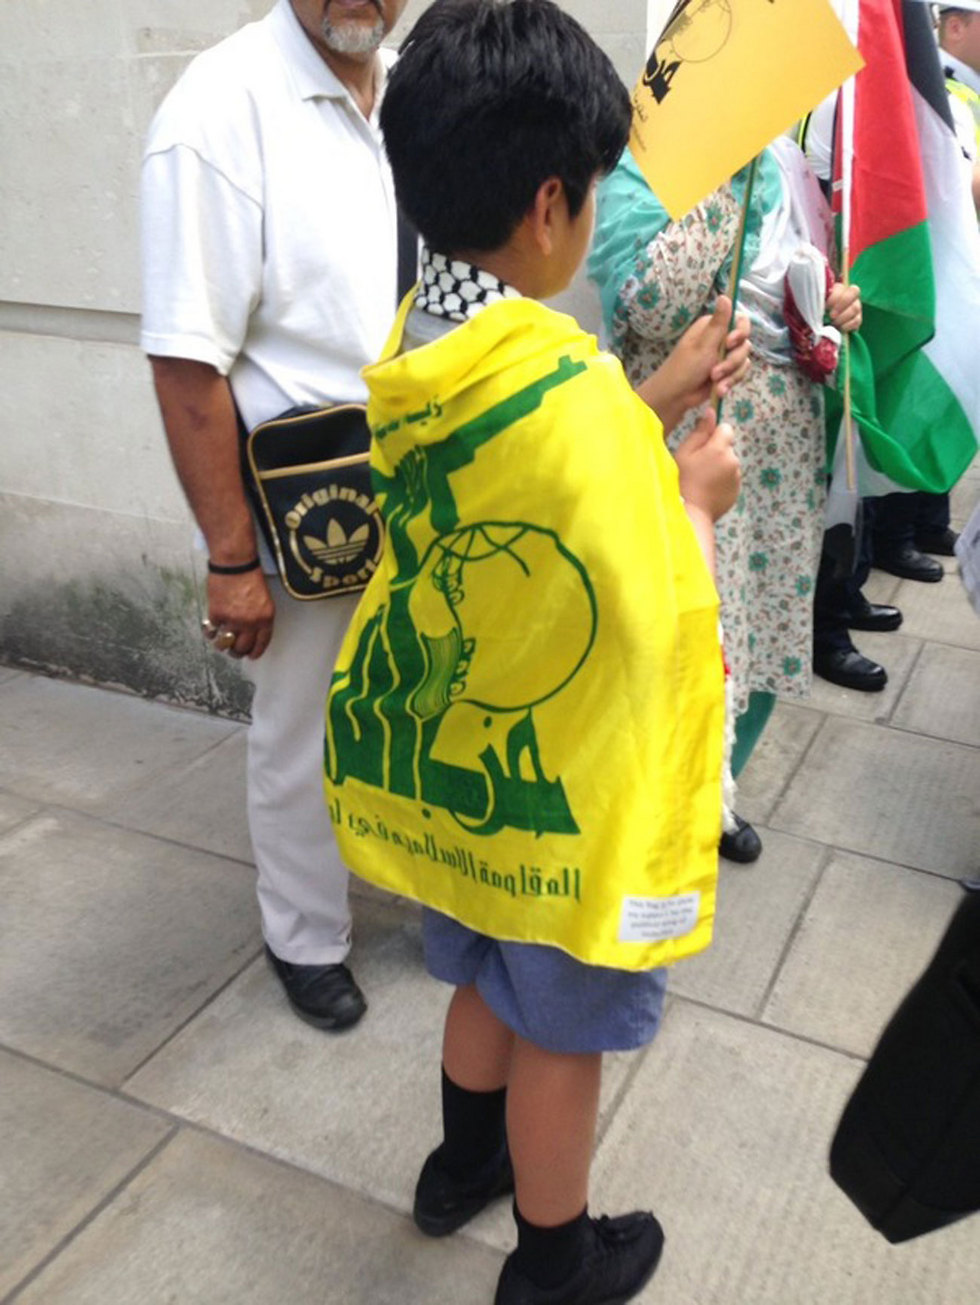 Child attending the march wrapped in a Hezbollah flag (Photo: World Jewish Congress)